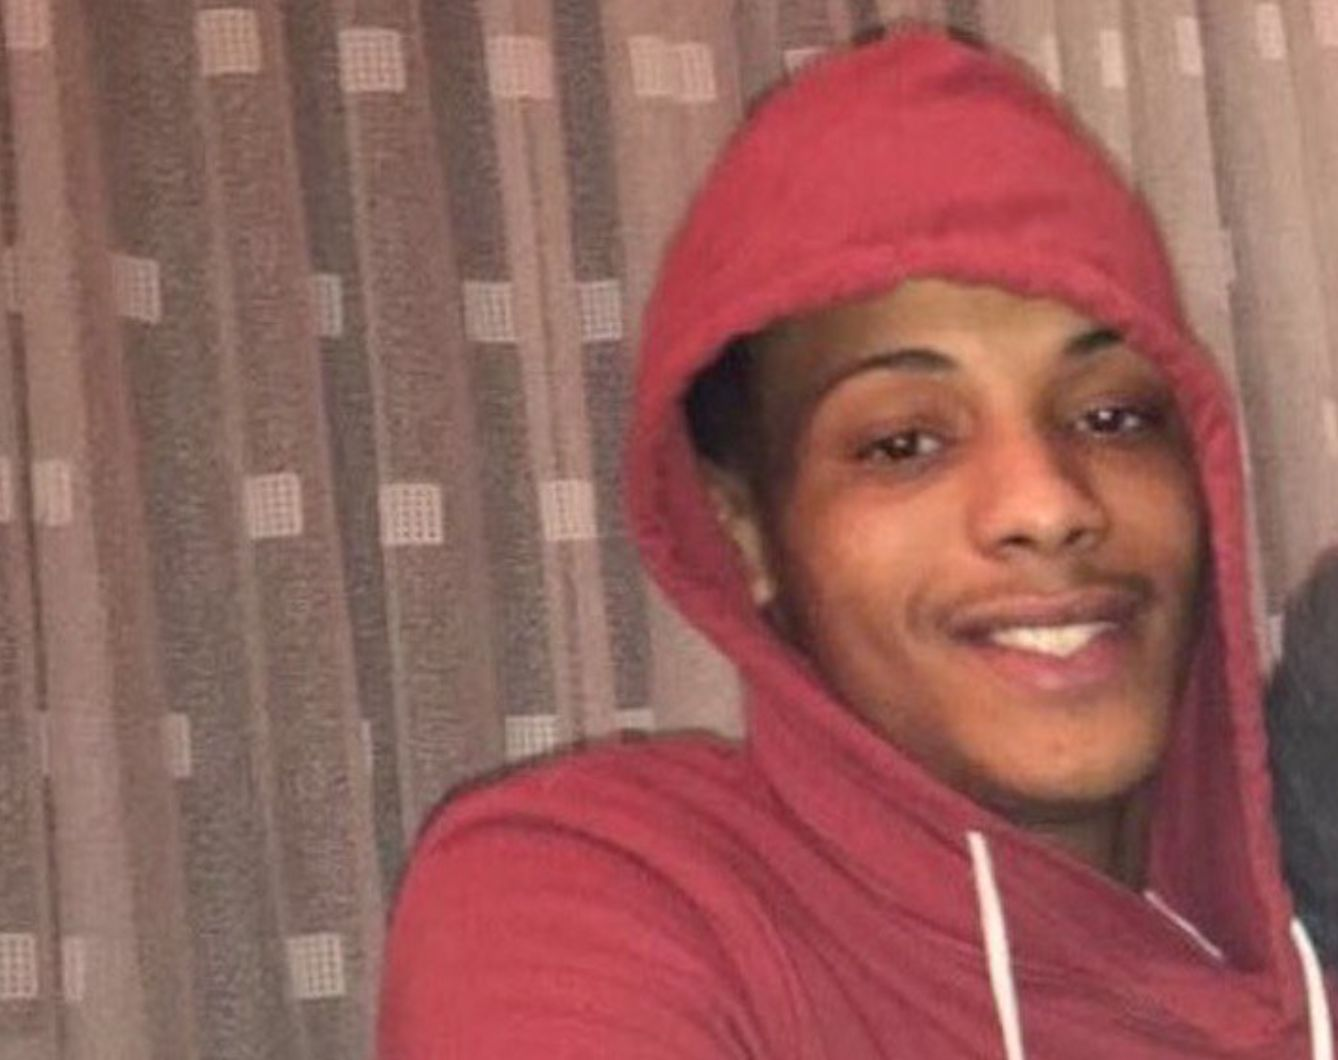 Police Officer Cleared Of Misconduct Over Death Of Rashan